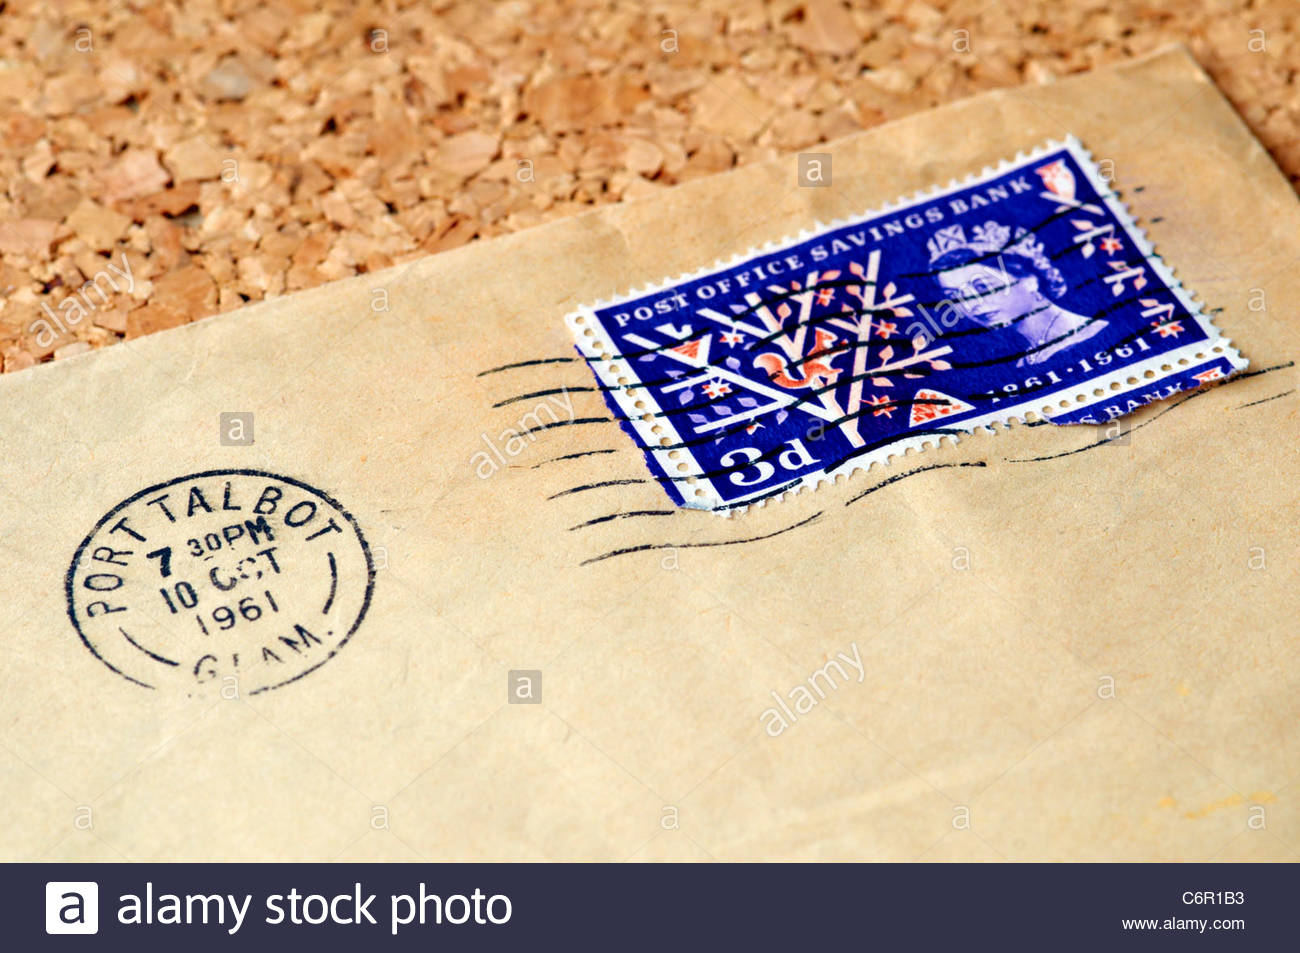 postmark on brown buff envelope with old 3d three pence stamps dated 1961 - Stock Image